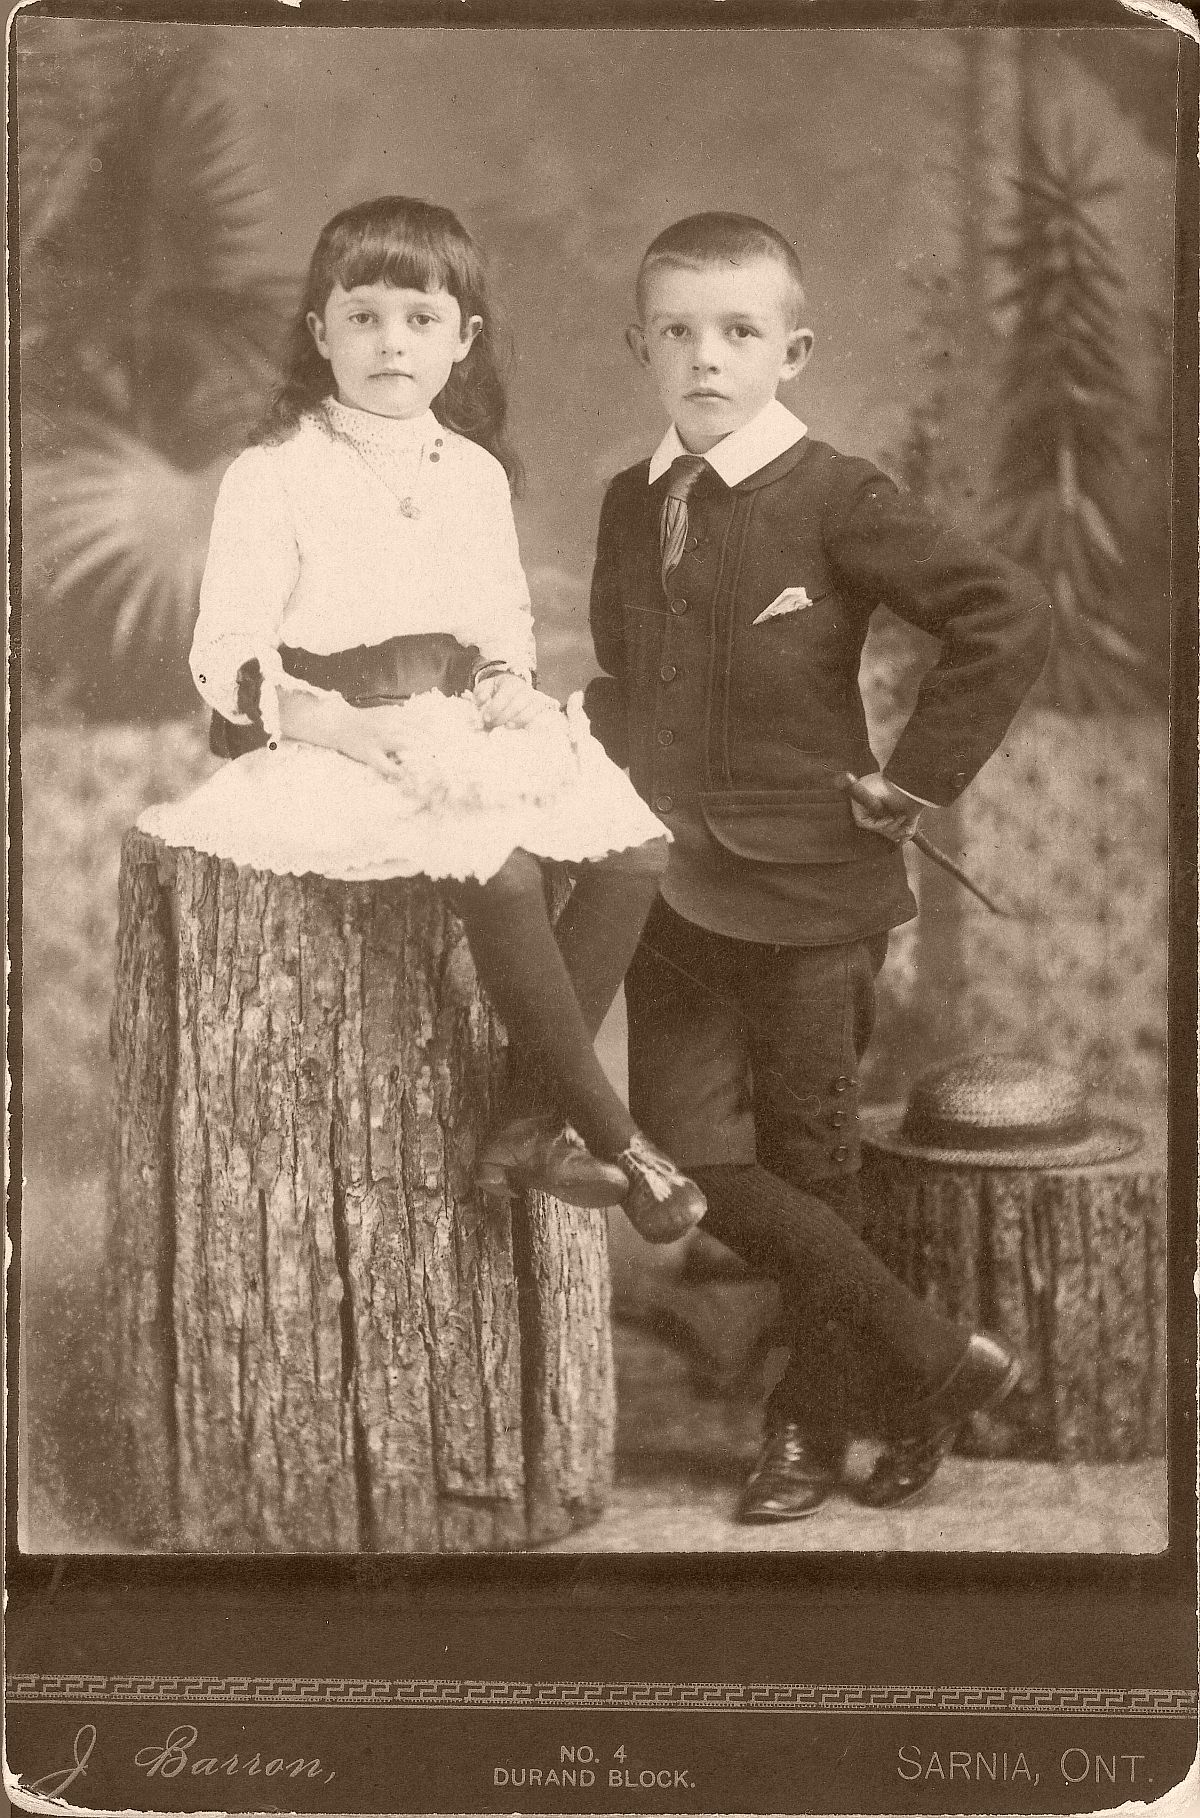 cabinet-cards-1870s-to-1880s-vintage-19th-century-victorian-era-19